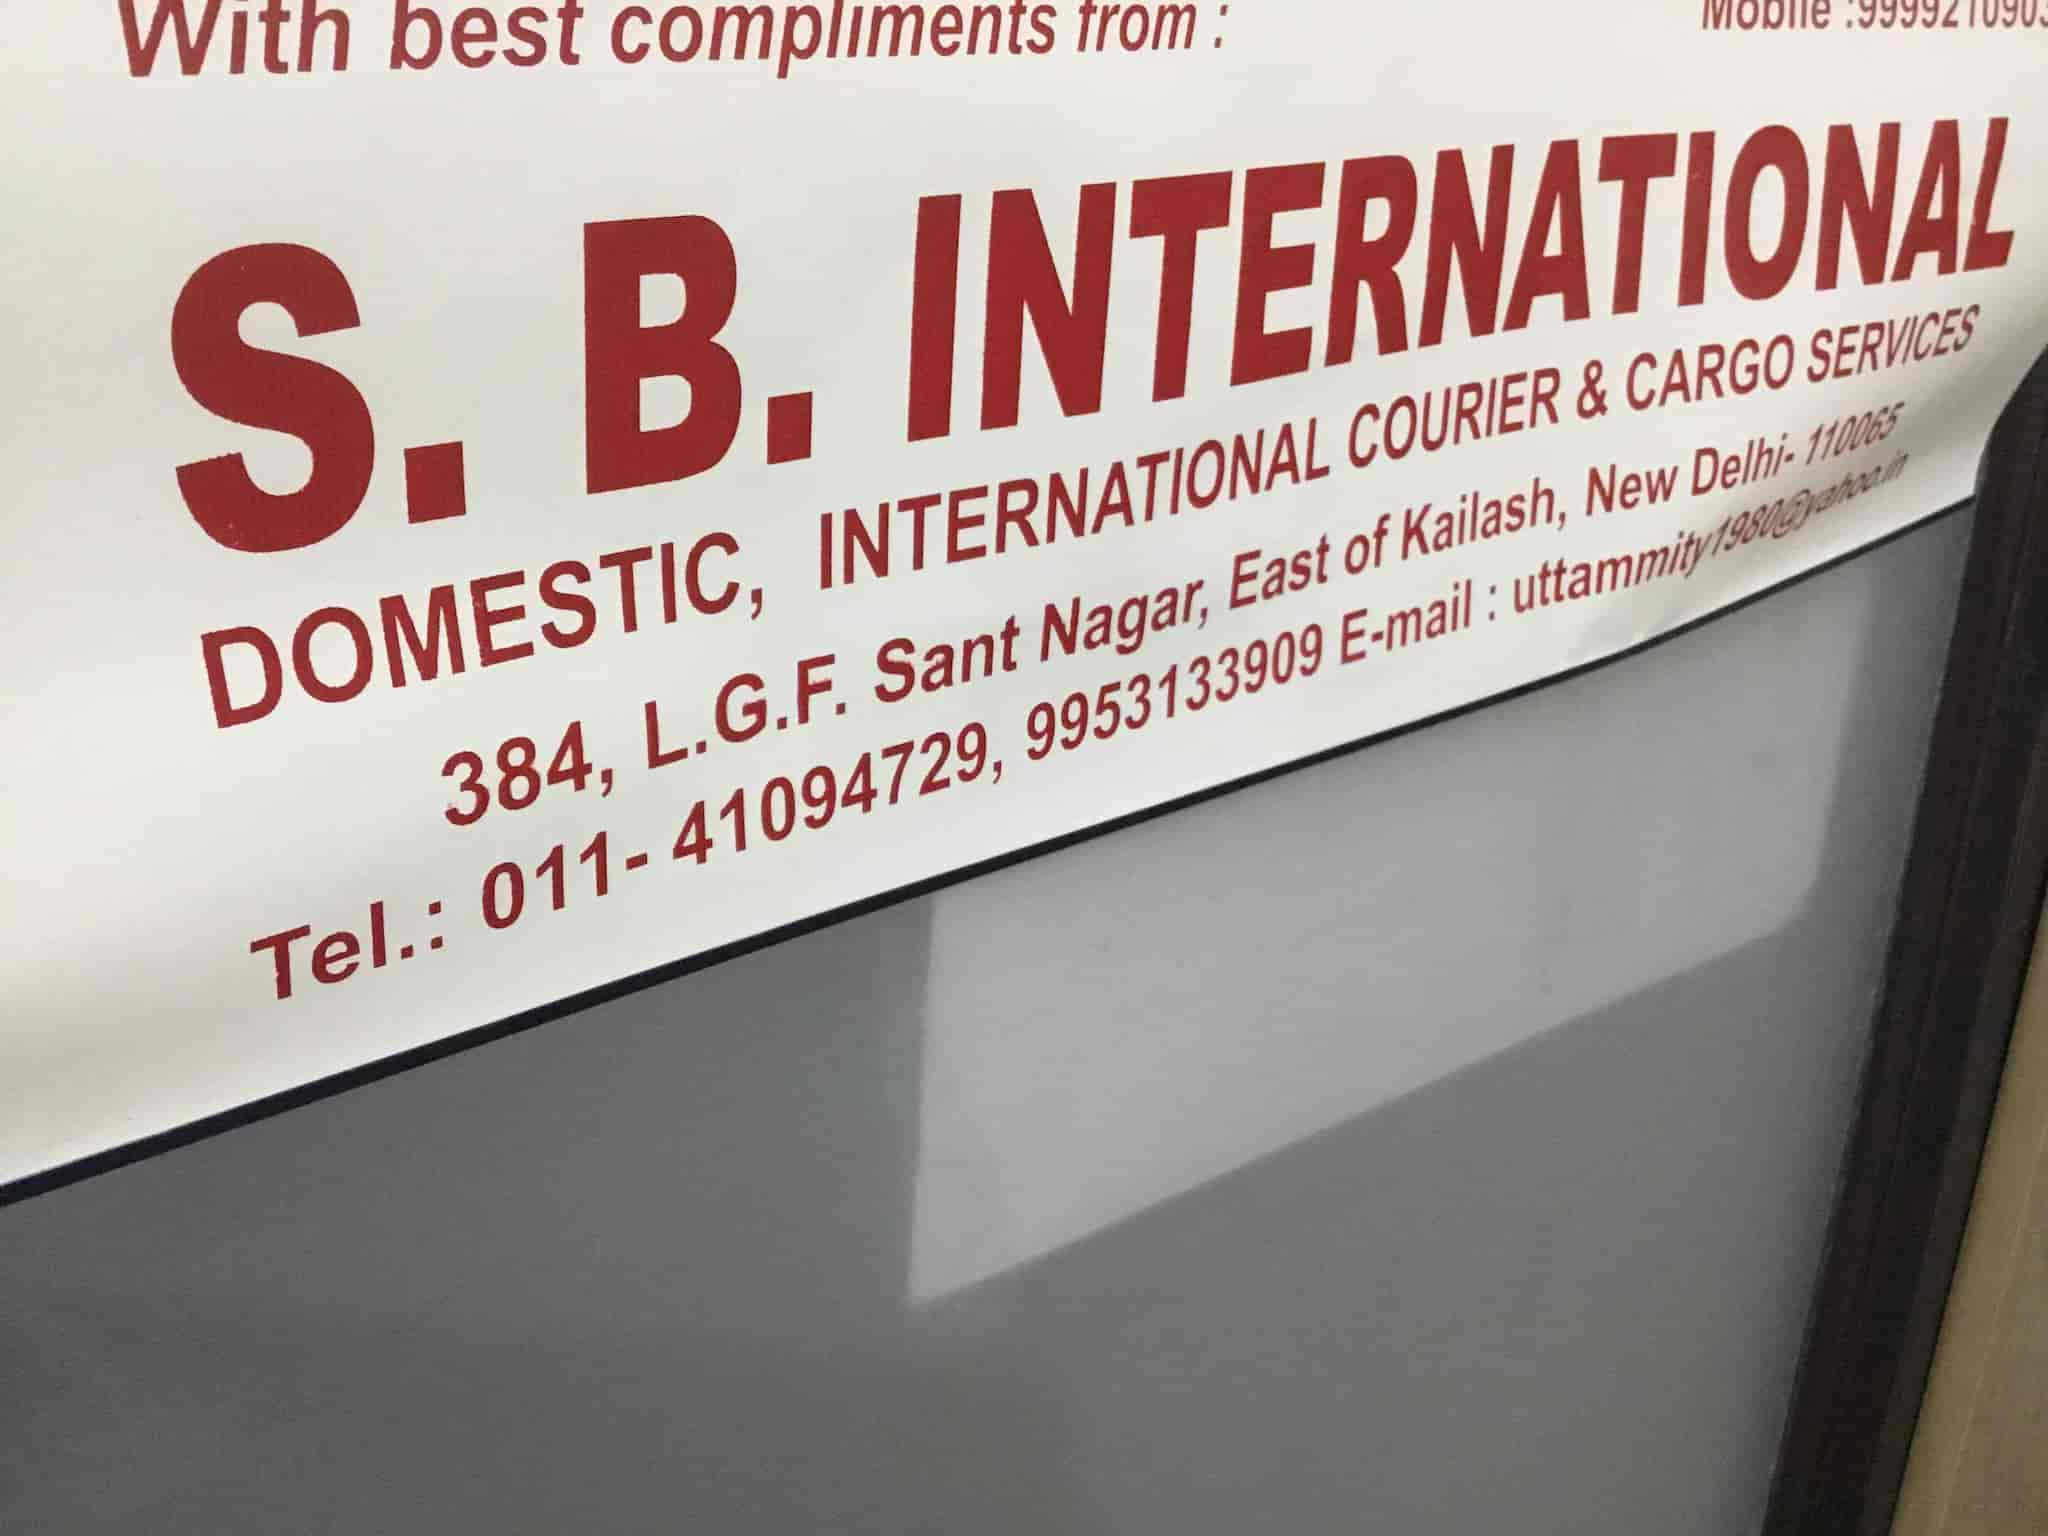 S B International courier & cargo, East Of Kailash - Courier